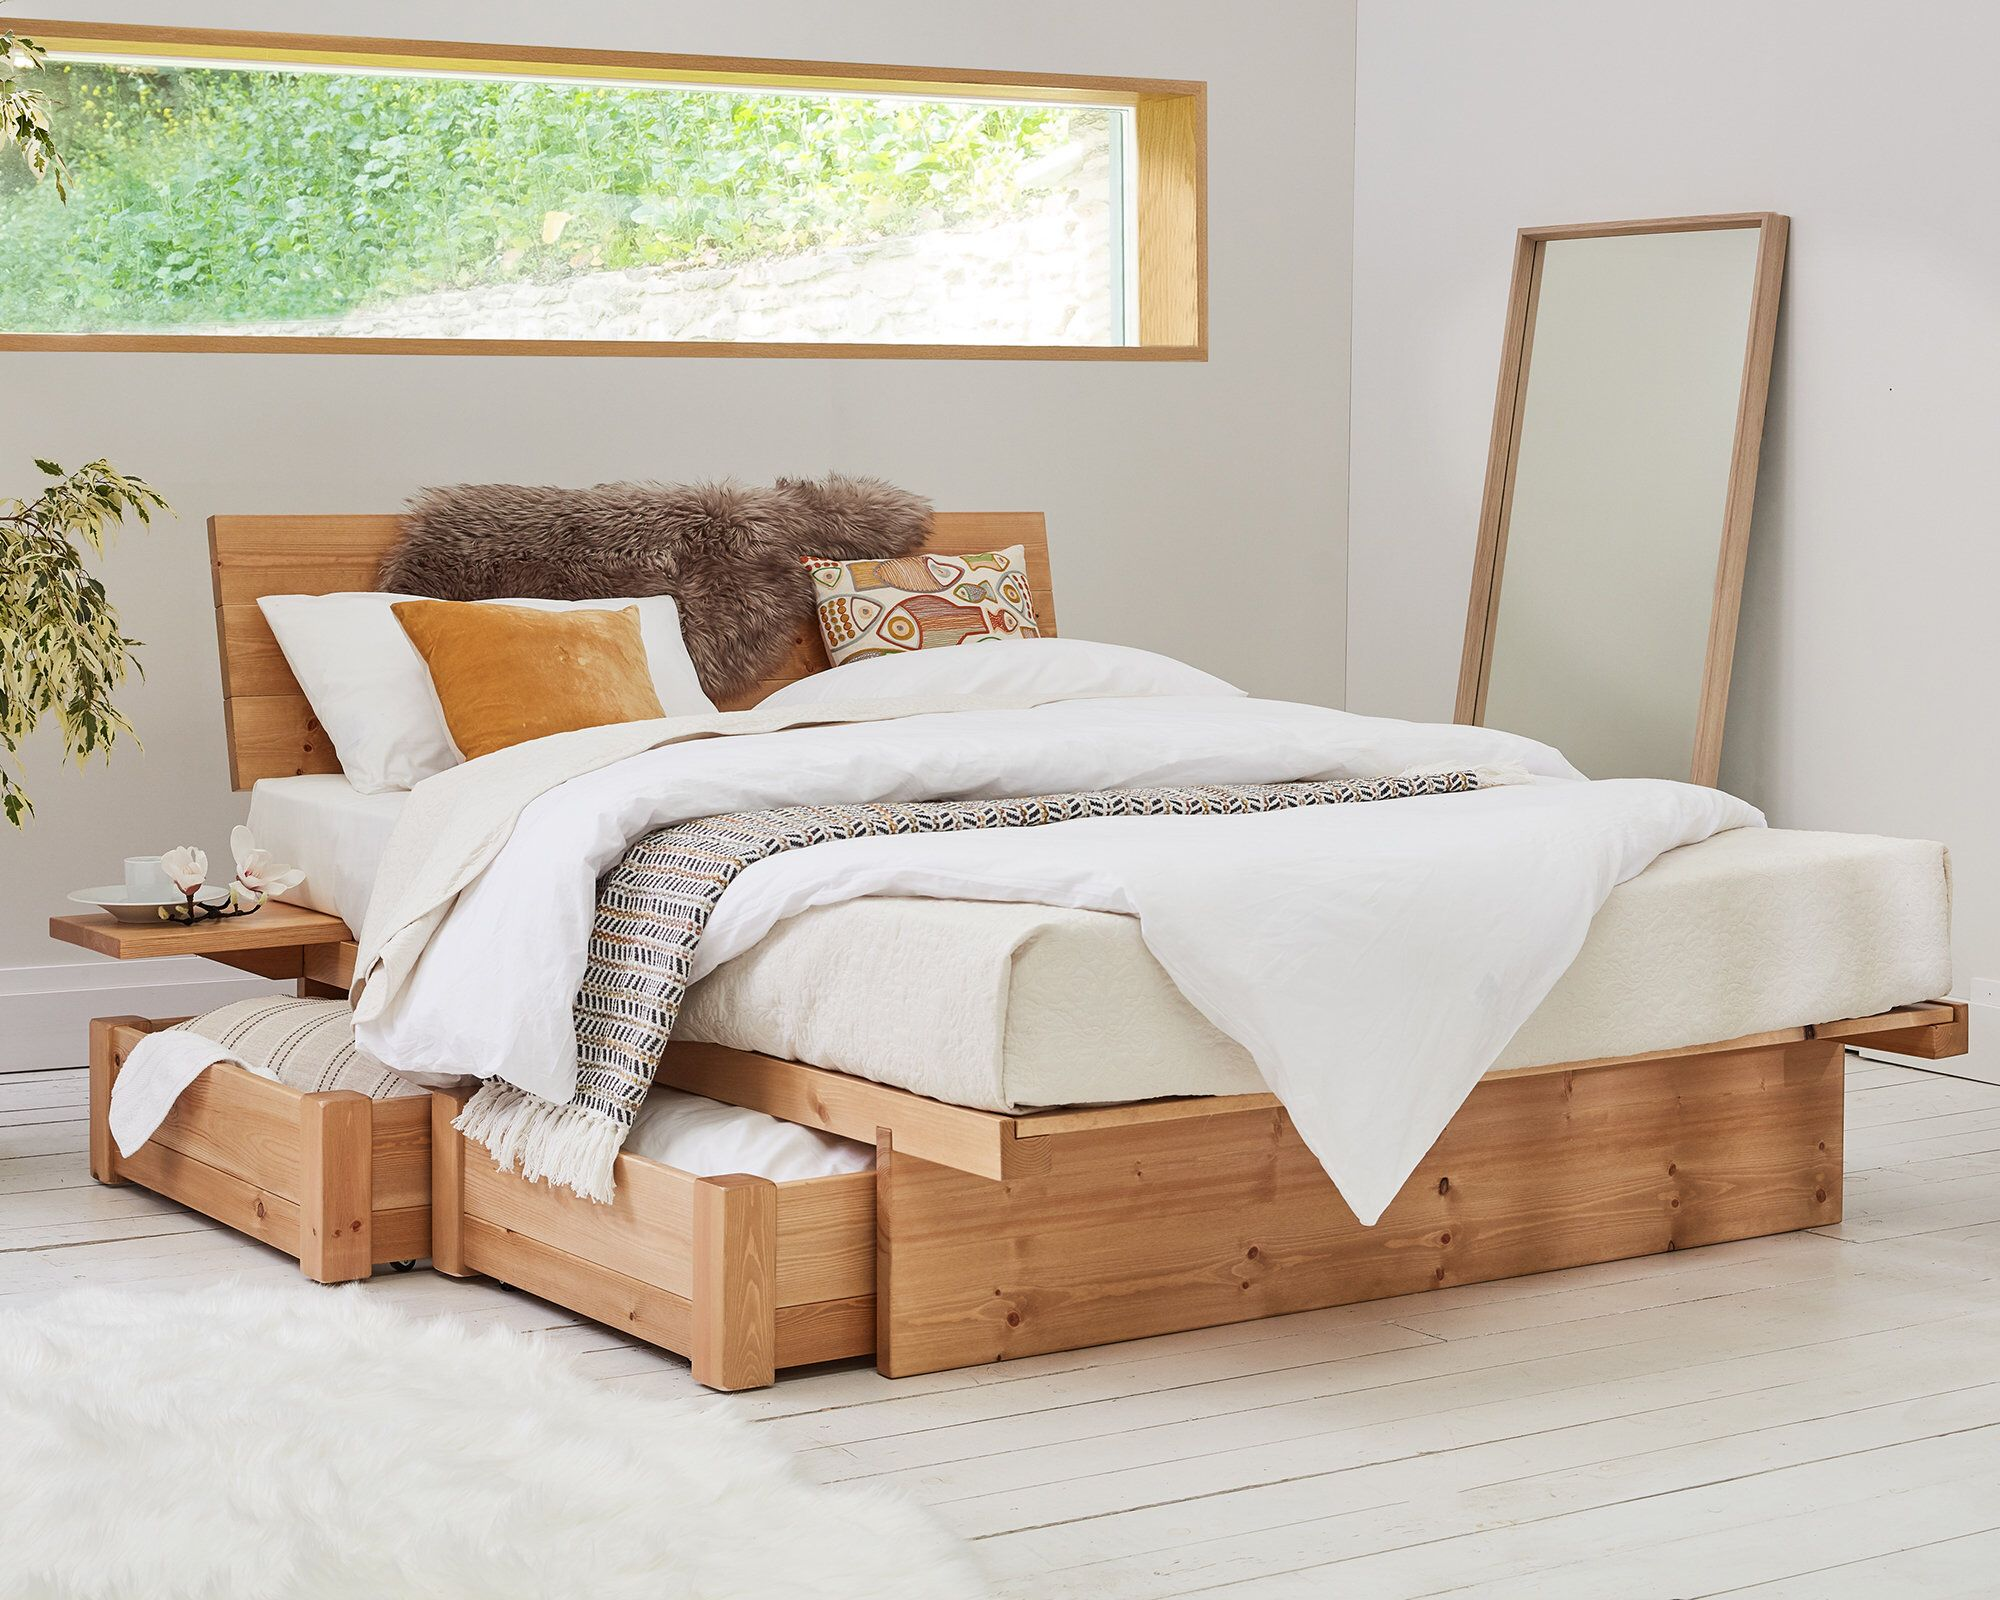 Japanese Wooden Bed Frame by Get Laid Beds in 2020